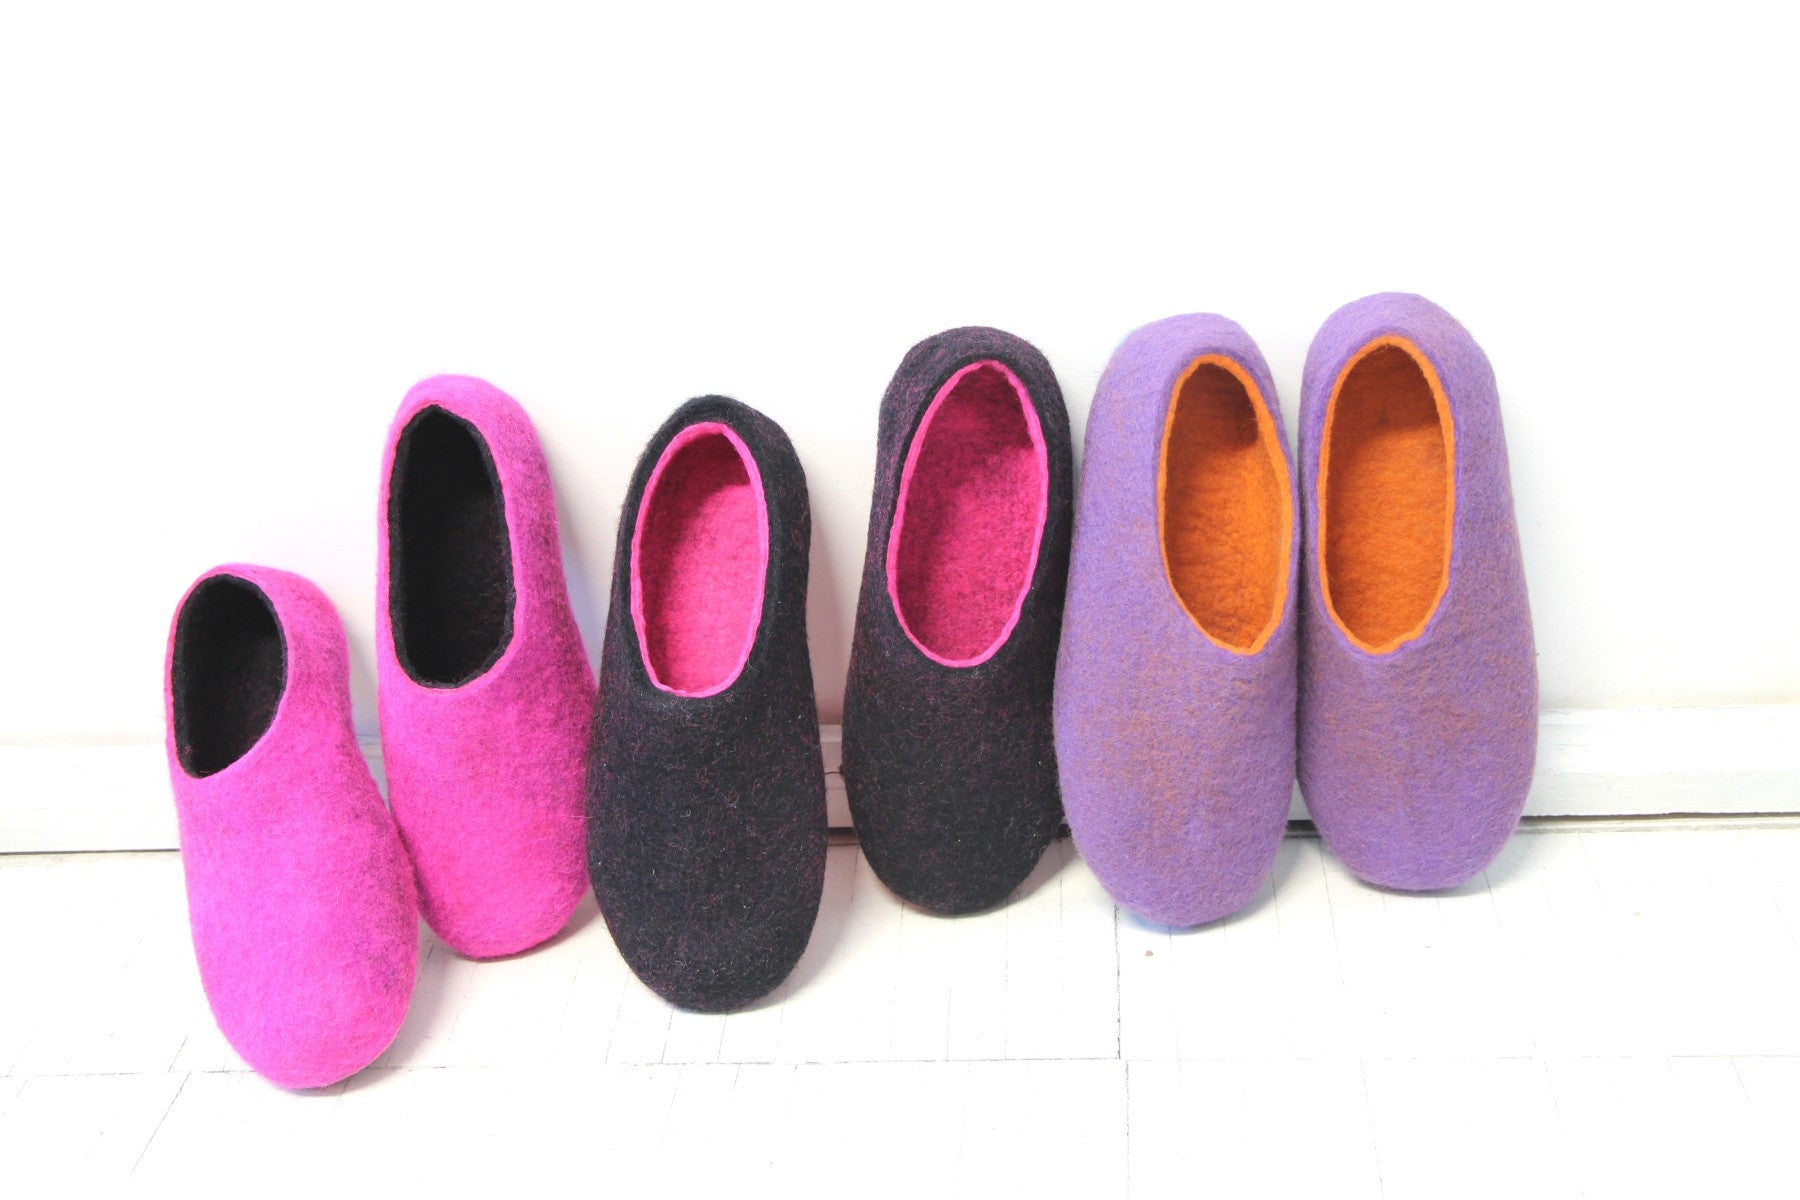 Womens Wool Felt Slippers Black Hot Pink Indoors - Wool Walker  - 6